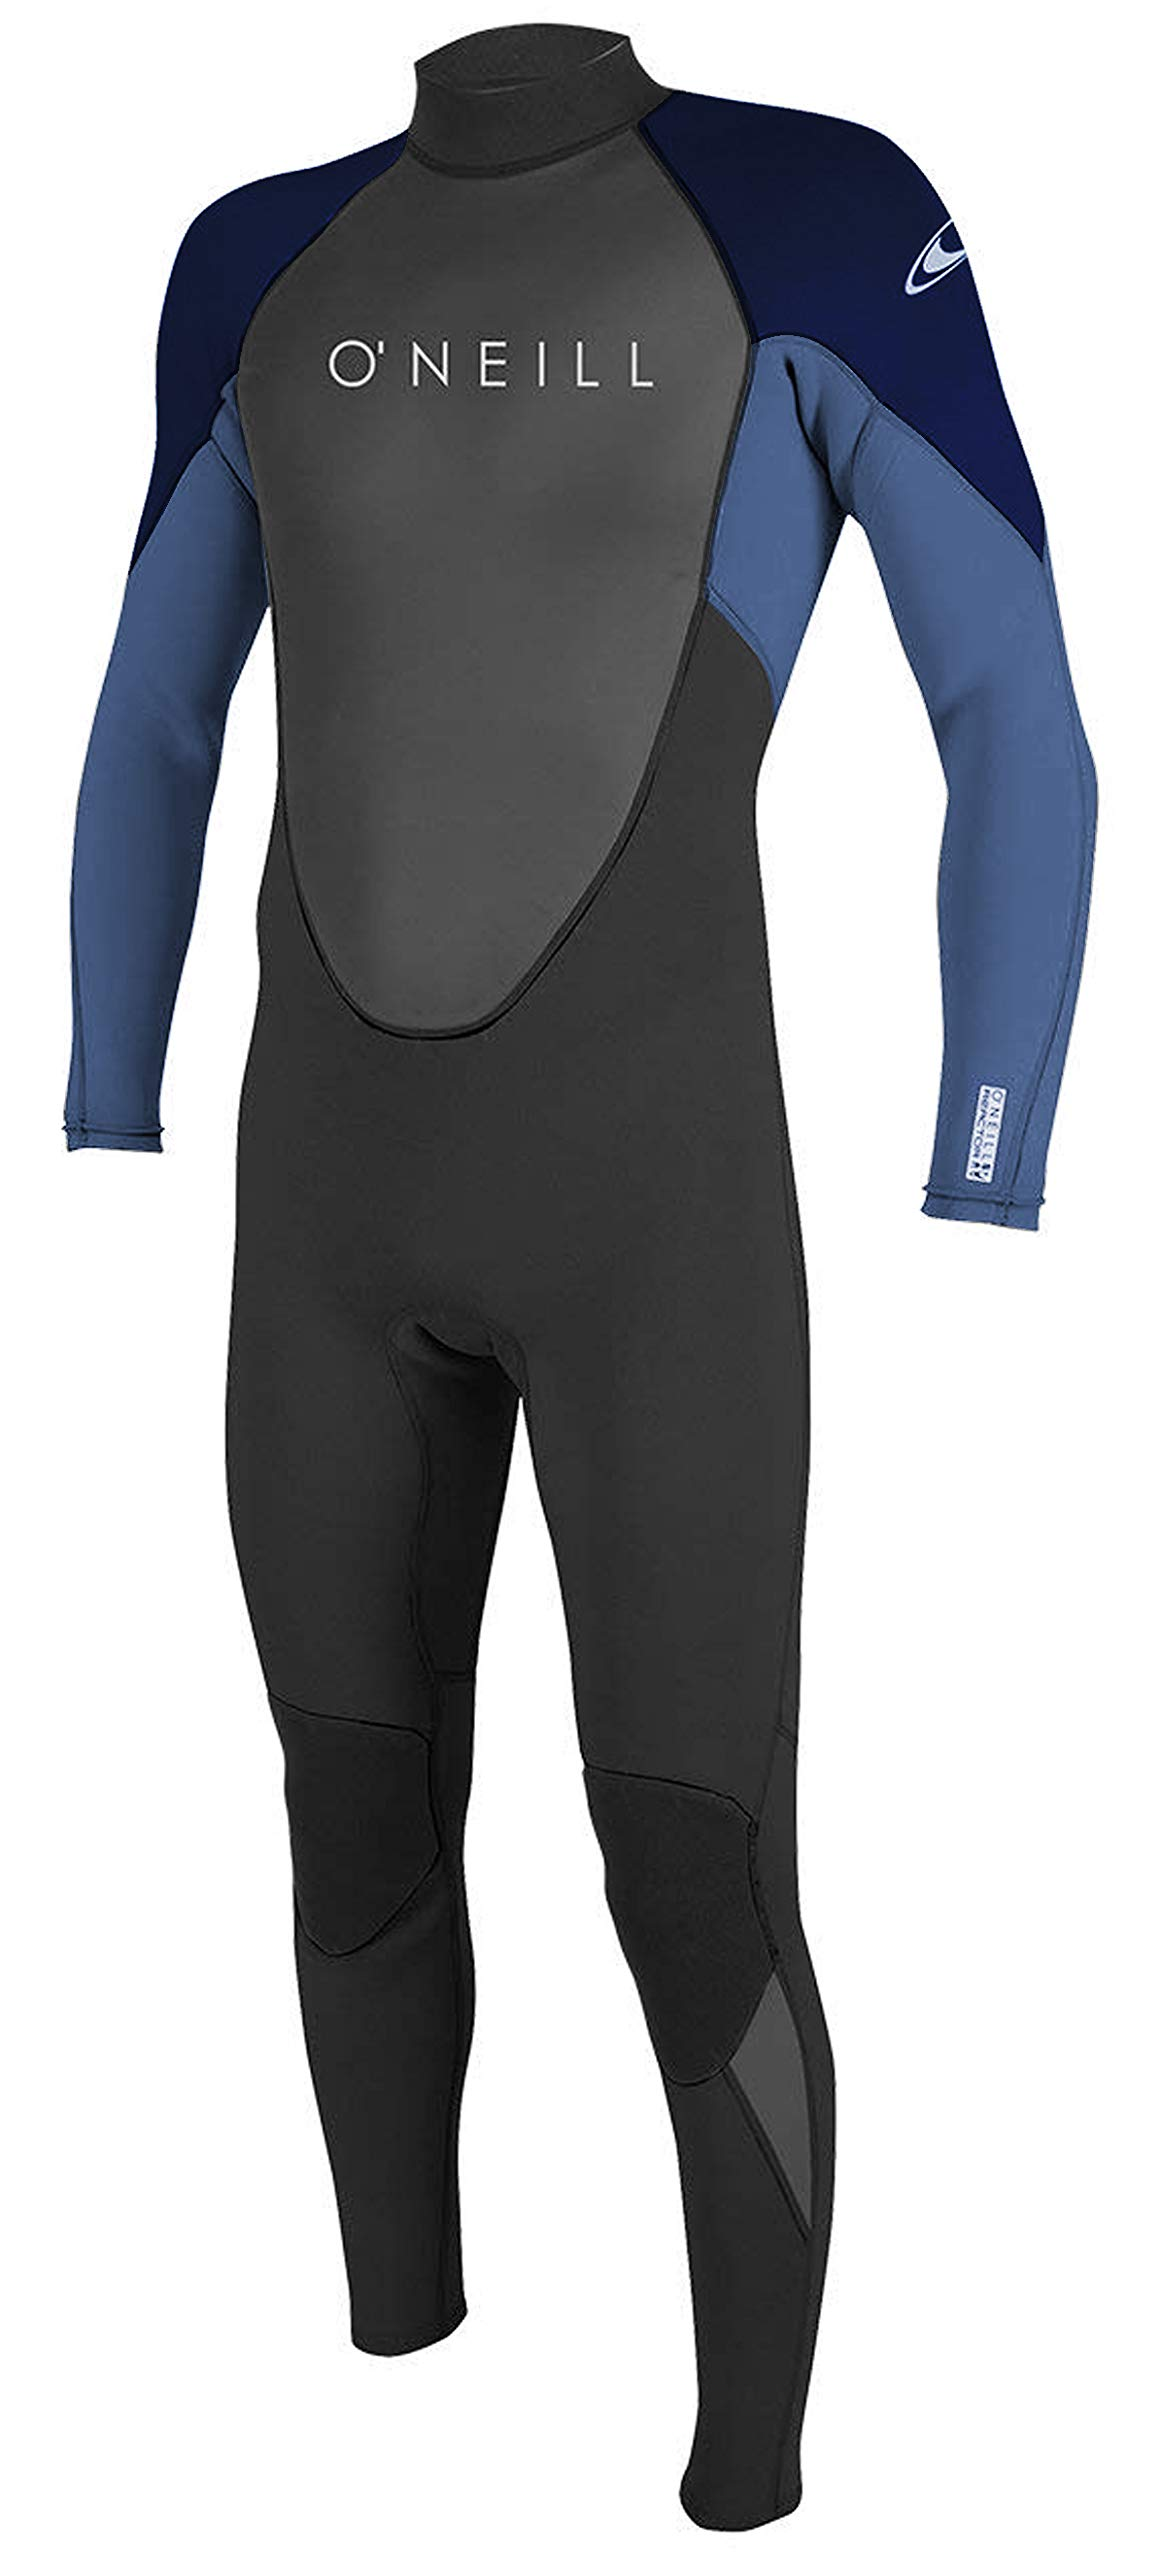 O'Neill Men's Reactor II 3/2mm Back Zip Full Wetsuit, Medium, BLK/DSTYBLU/Slate